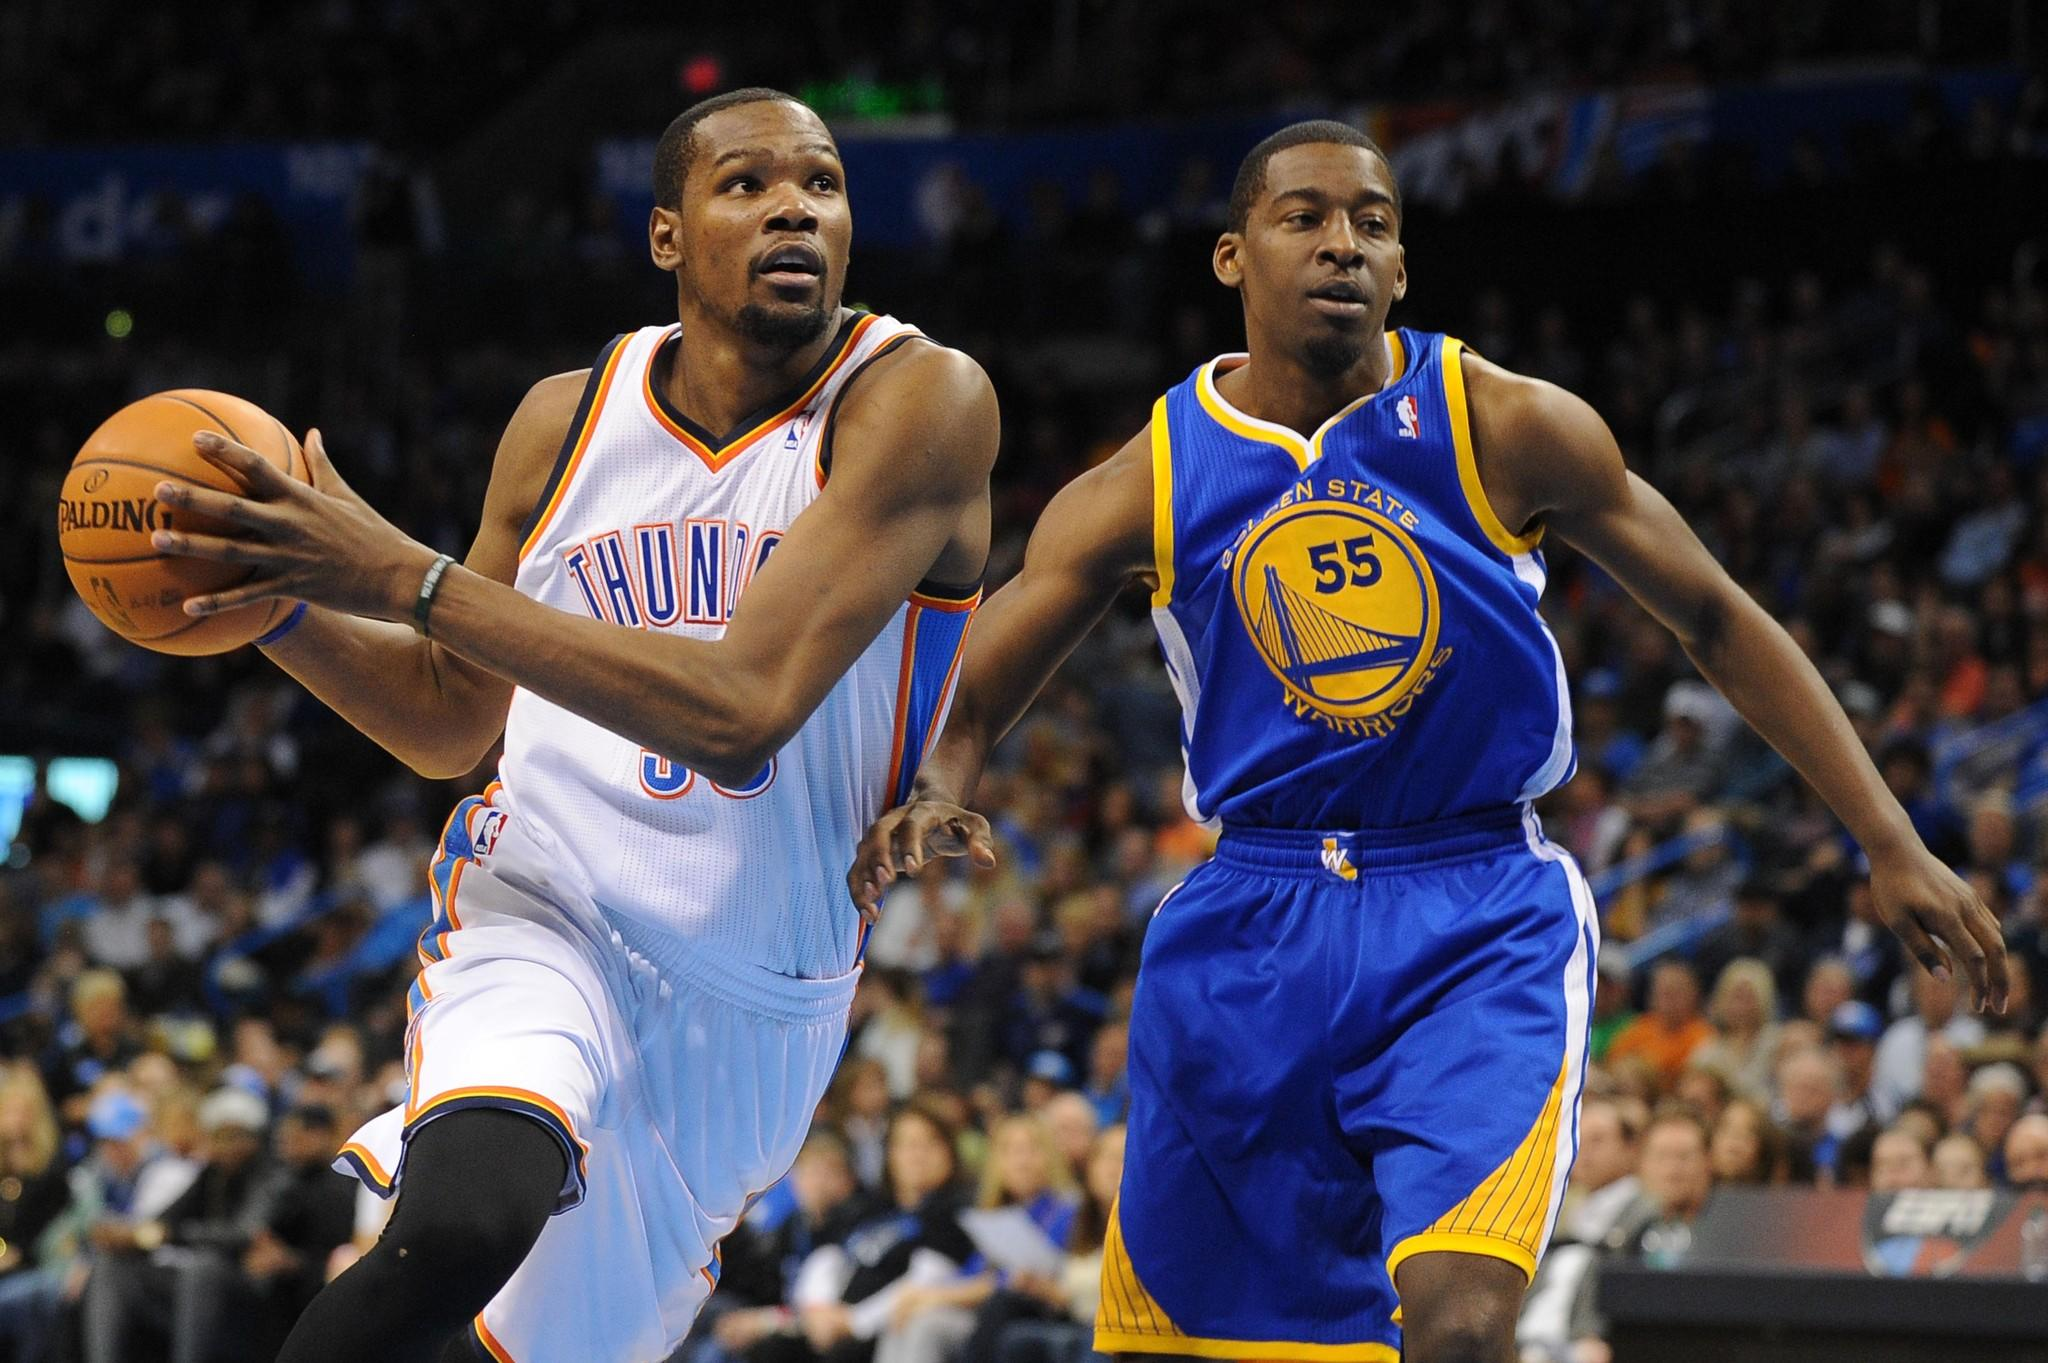 Oklahoma City Thunder small forward Kevin Durant (35) drives the ball to the basket against Golden State Warriors guard Jordan Crawford (55) at Chesapeake Energy Arena.